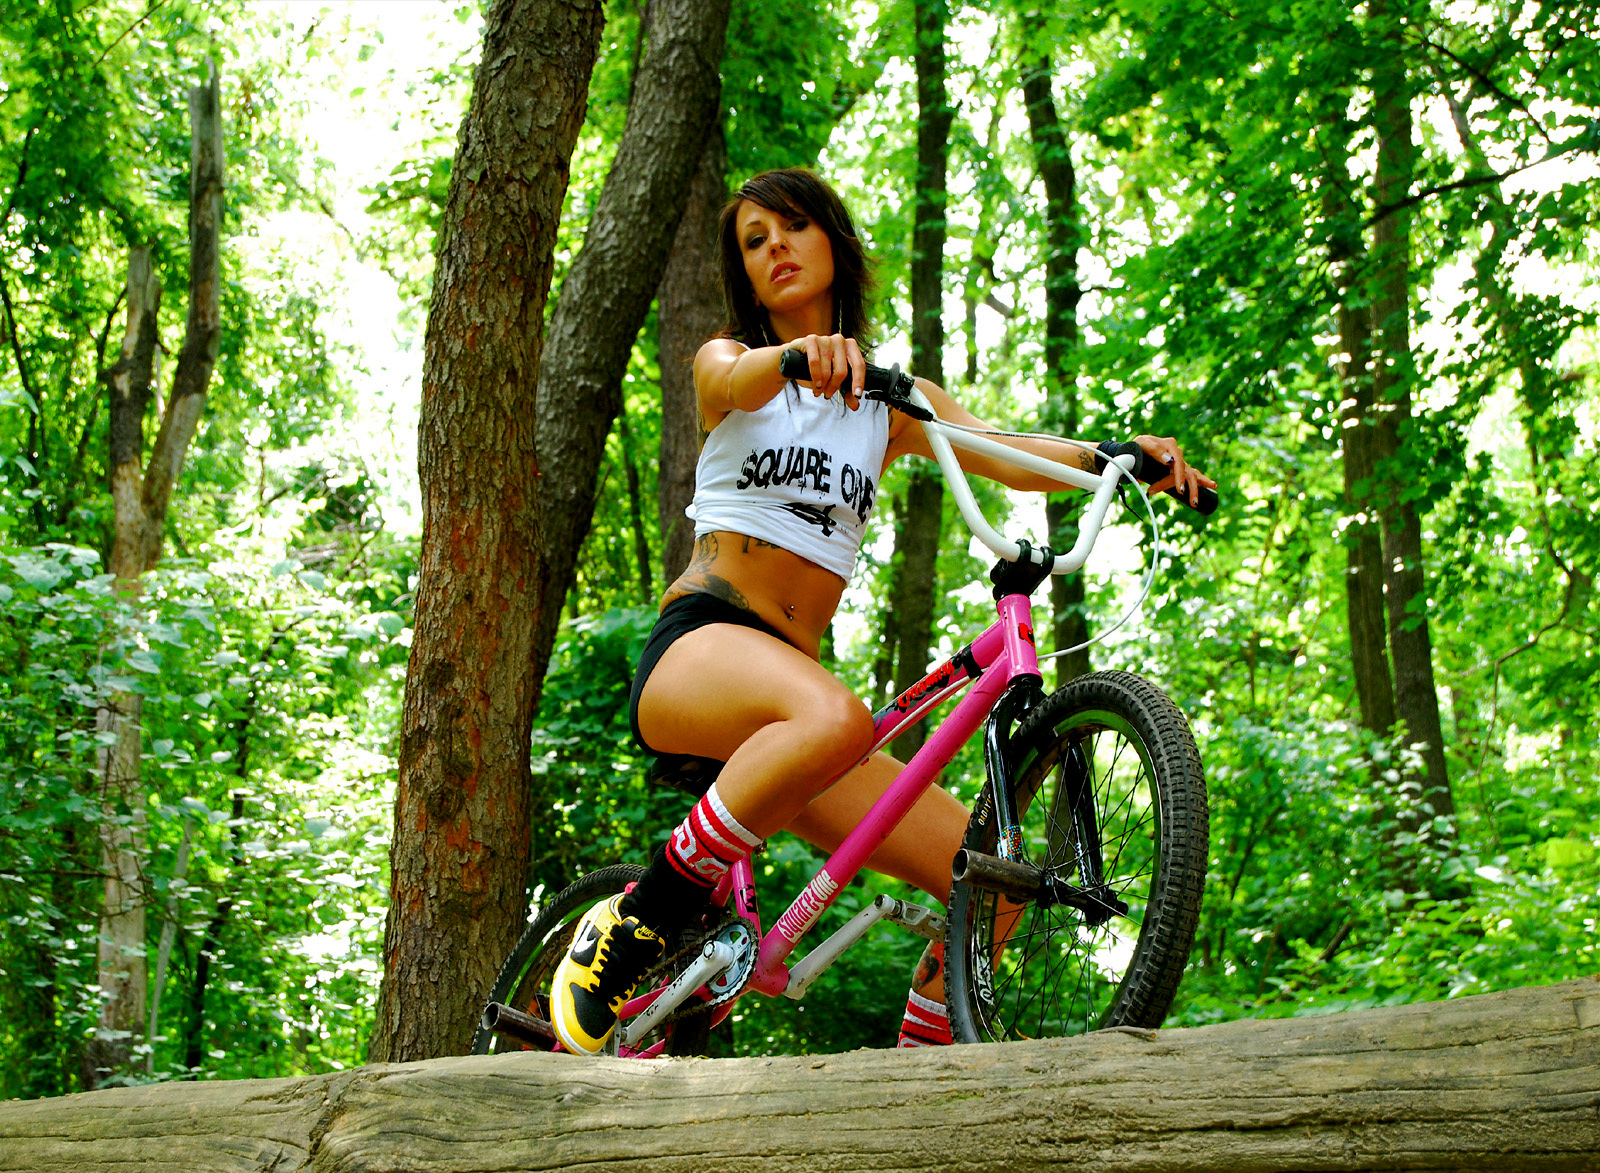 bmx and girl wallpaper - photo #12